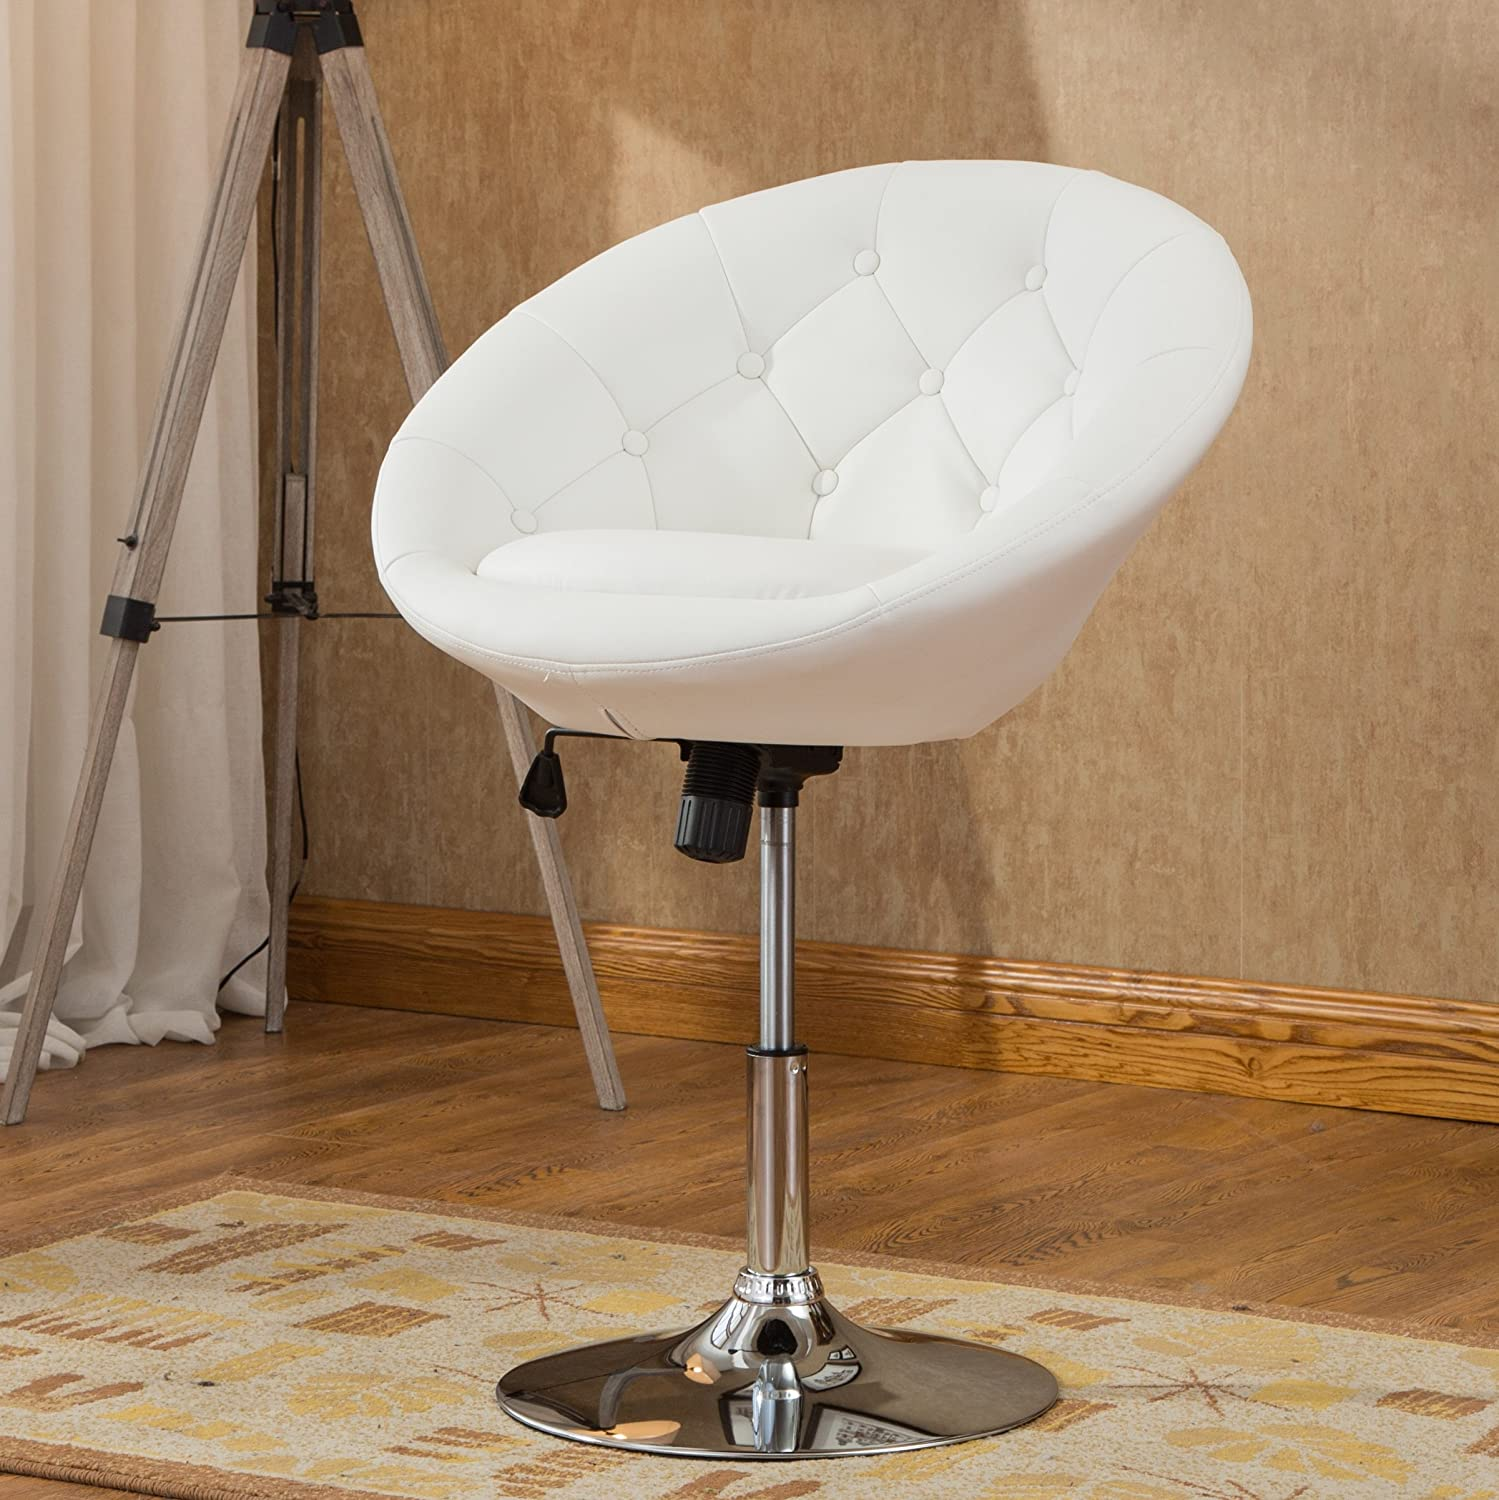 Roundhill Furniture Noas Contemporary Round Tufted Back Tilt Swivel Accent Chair White RH PC165W